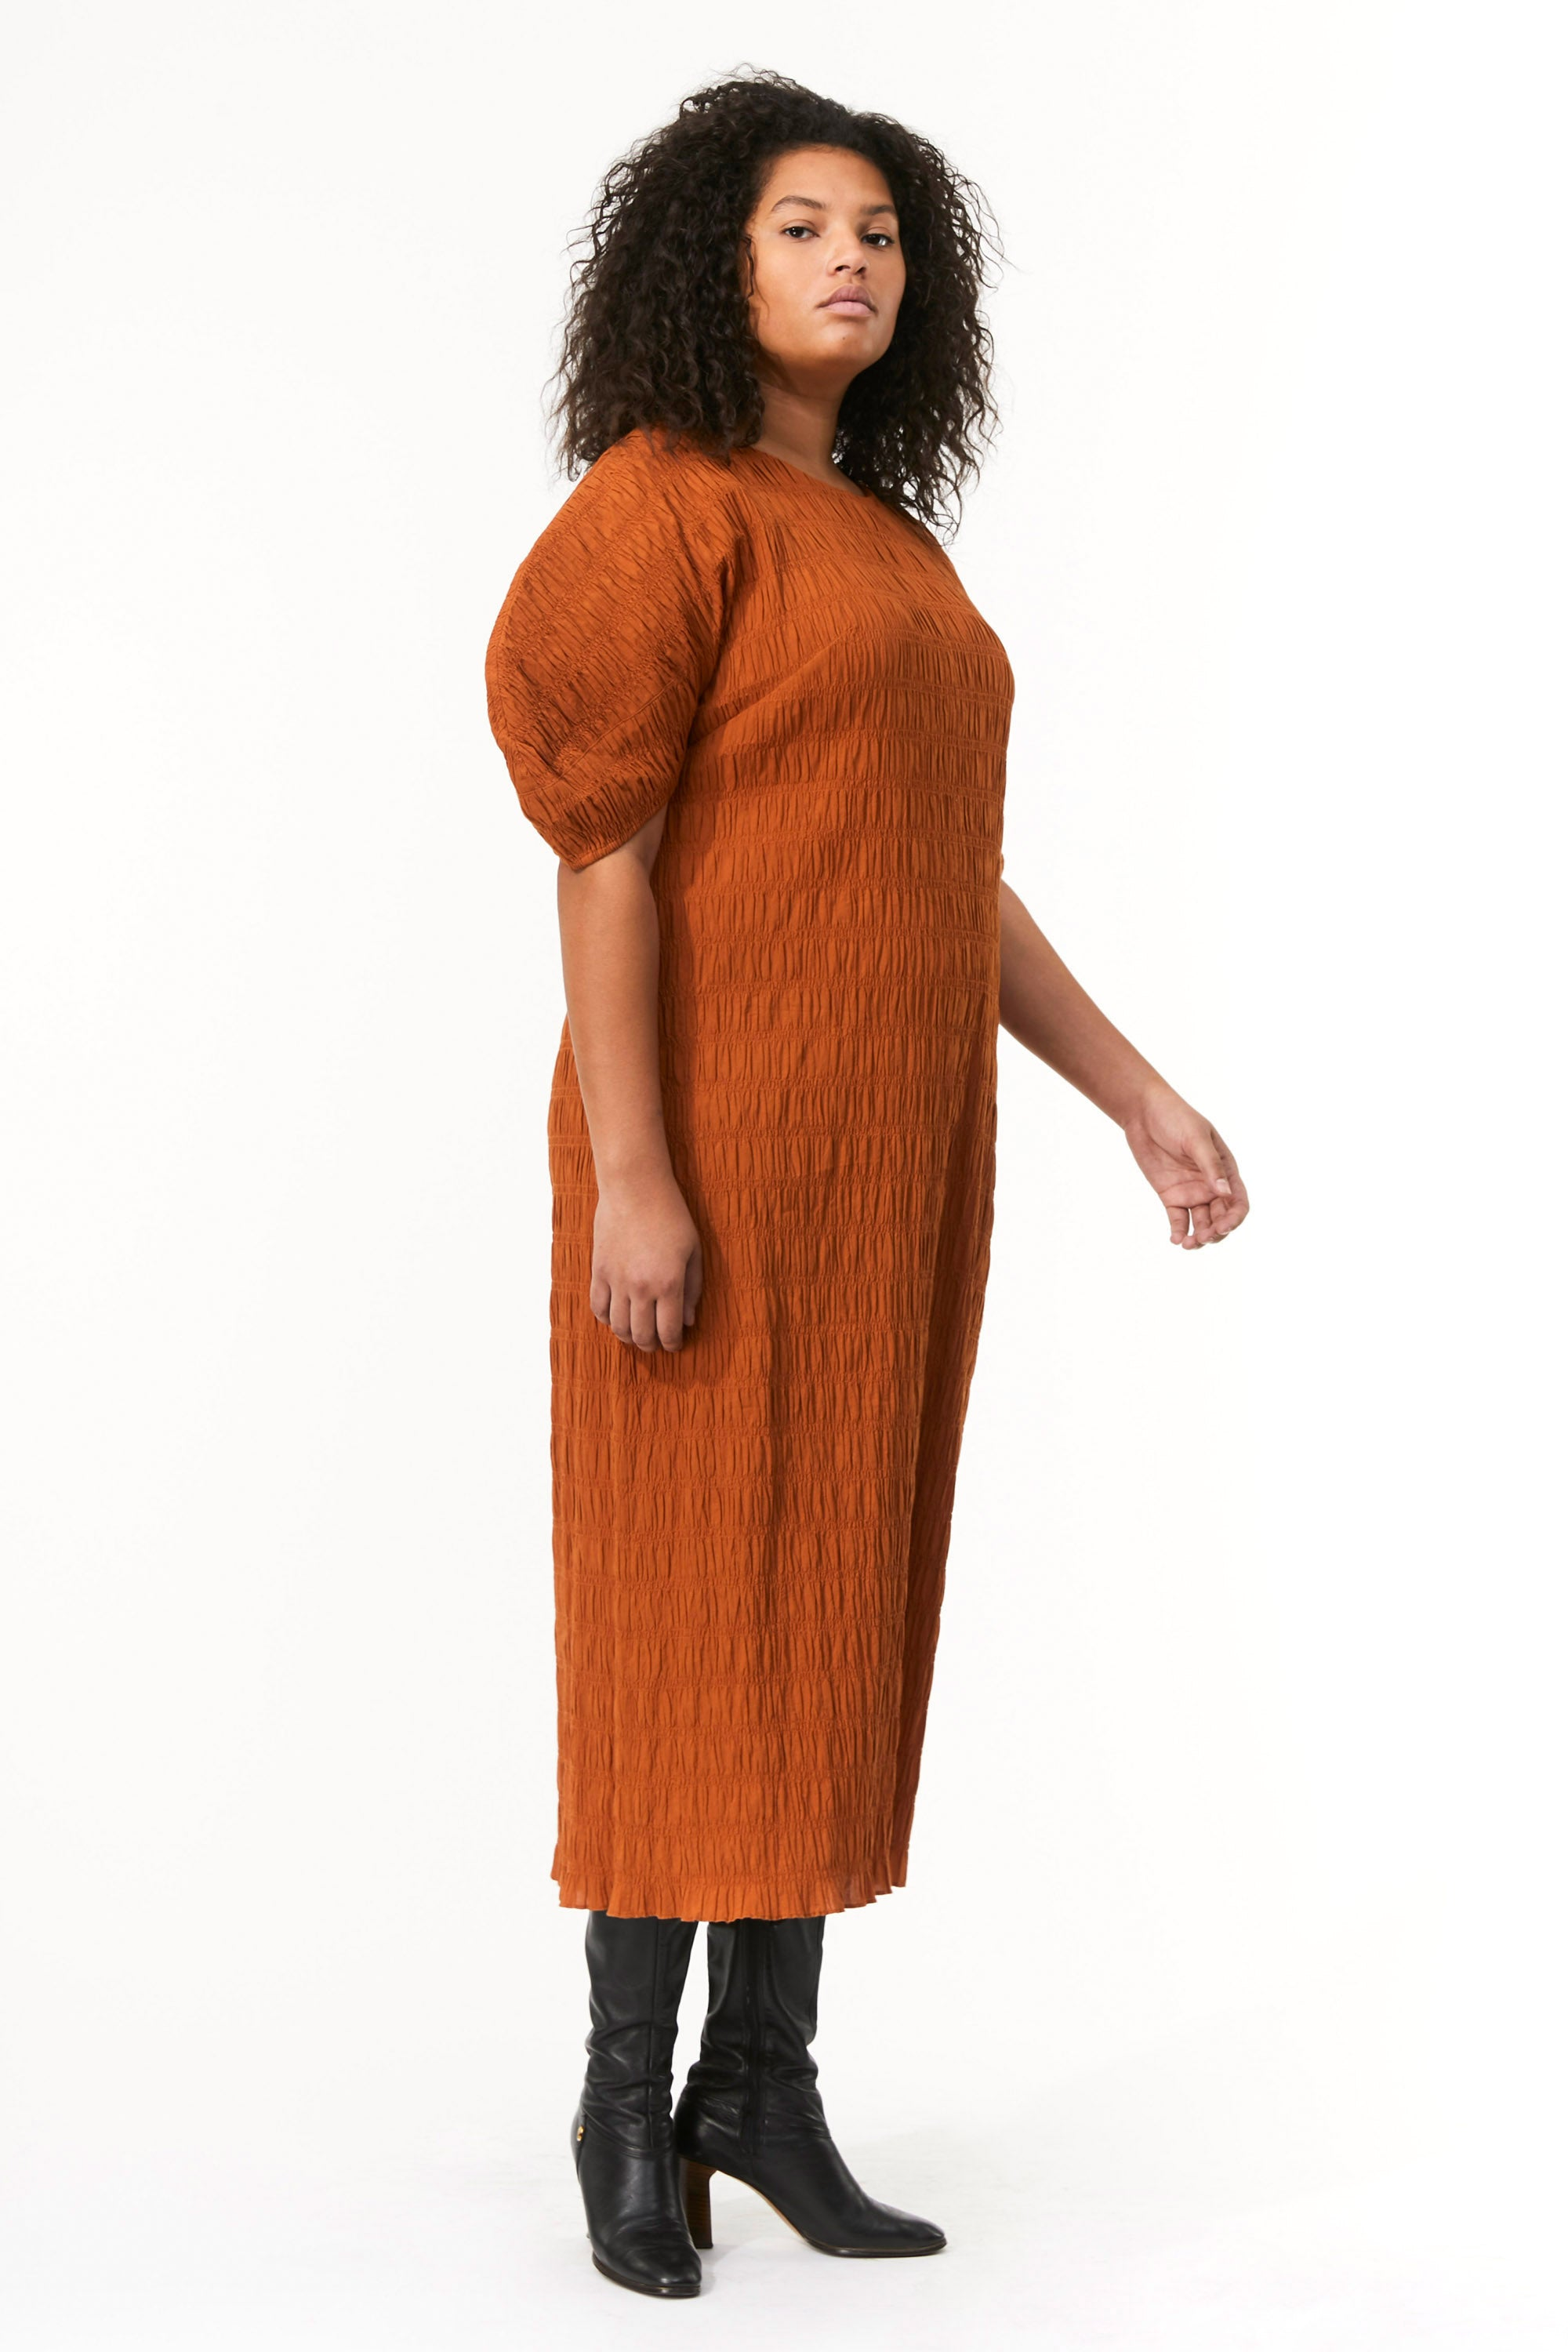 Mara Hoffman Extended Brown Aranza dress in organic cotton (side)